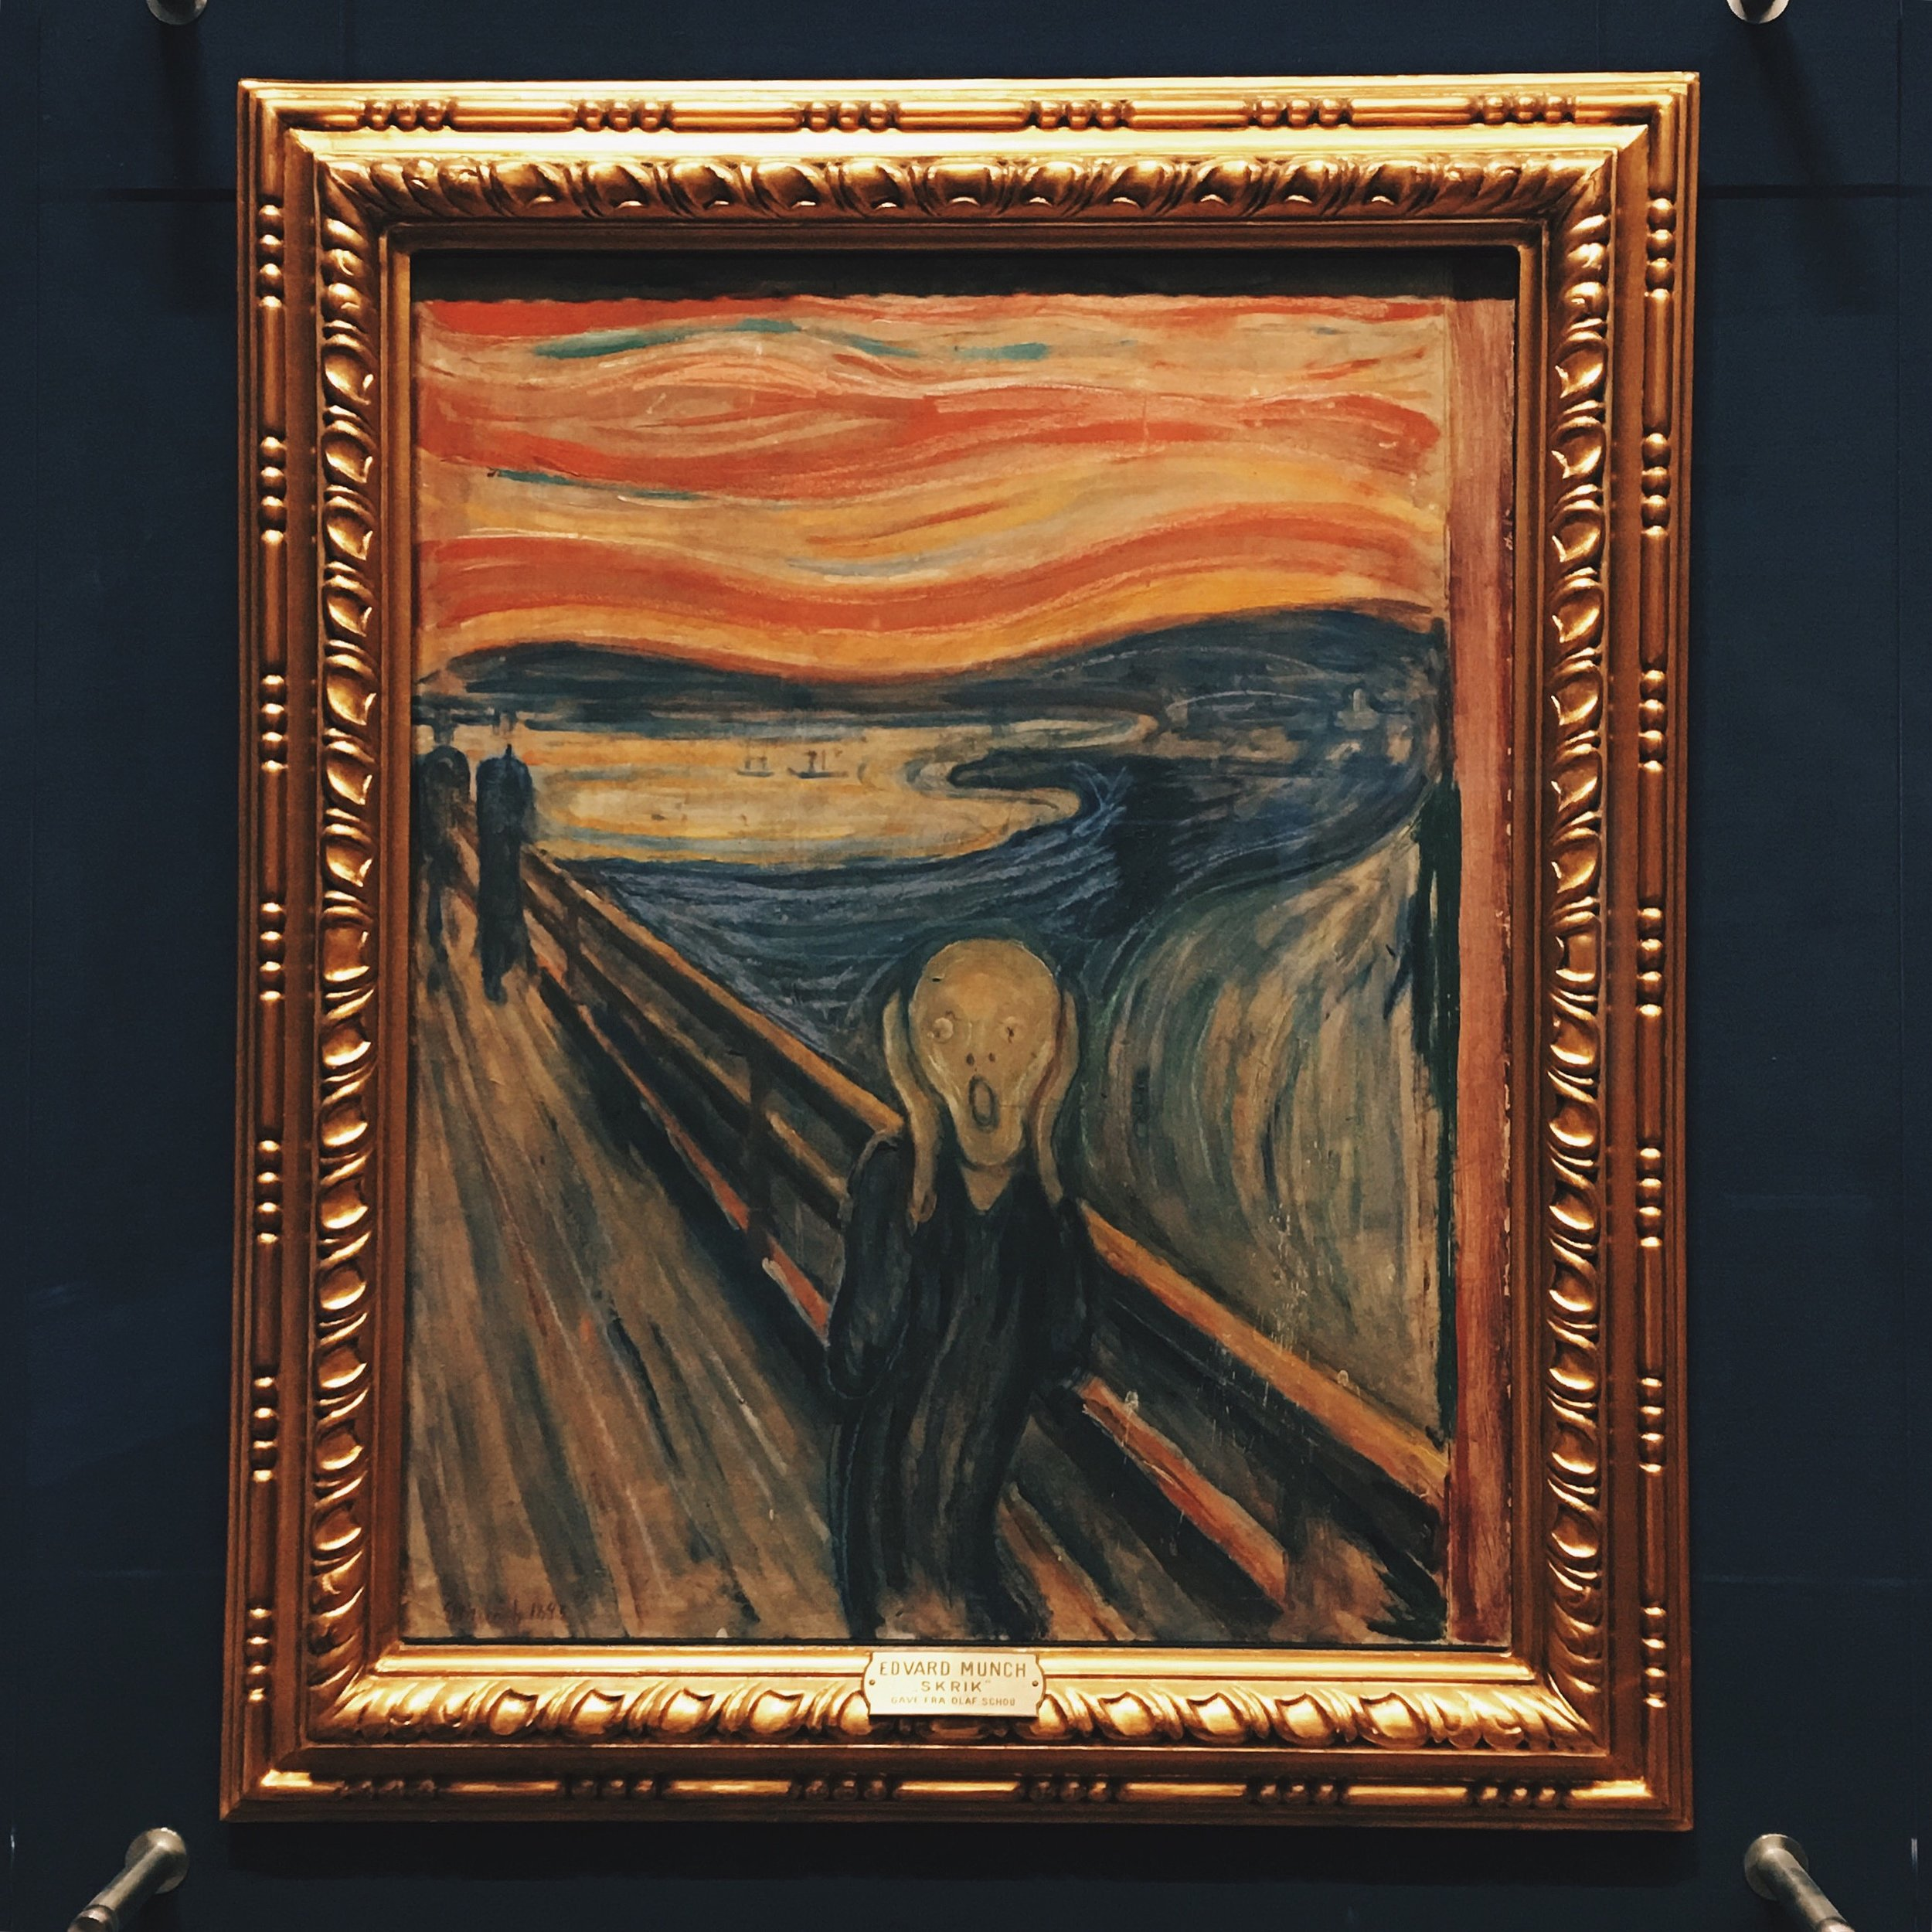 The Scream  (1893)   by Edvard Munch; Photo taken by me at the Nasjonalmuseet in Oslo, Norway in 2017.